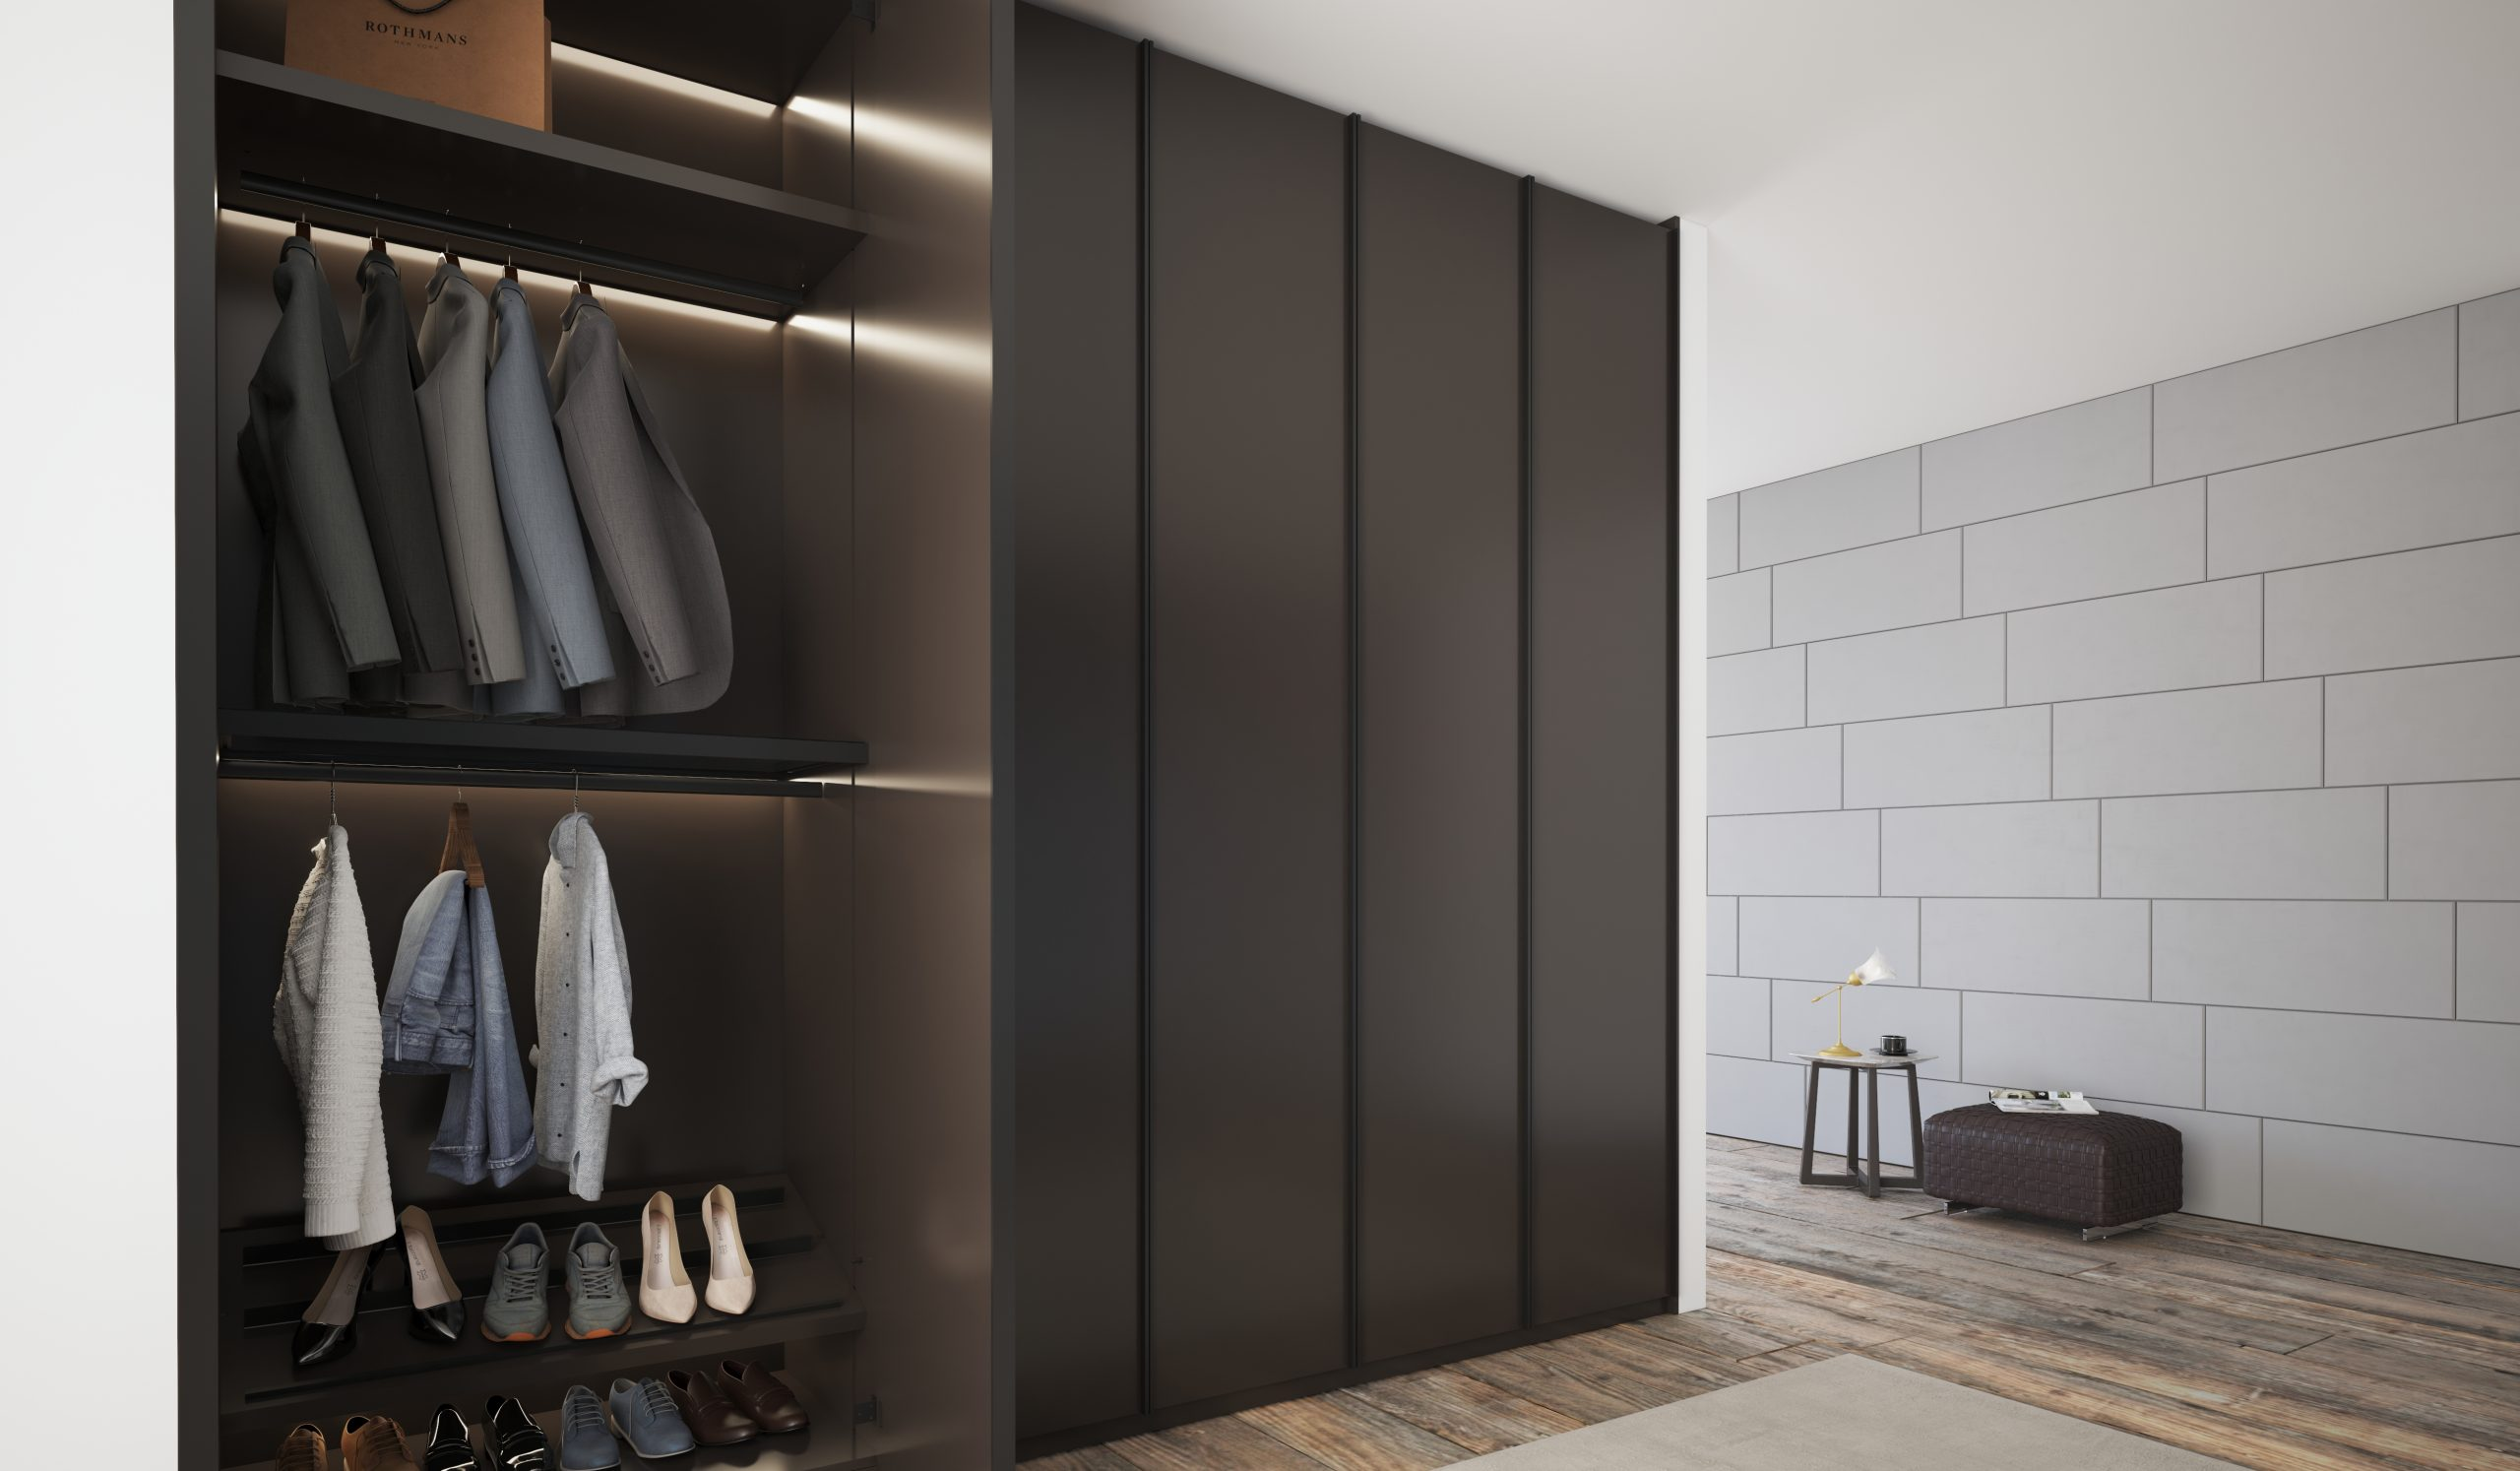 Linear Wood Fitted Hinged Wardrobe in Dark Grey Finish